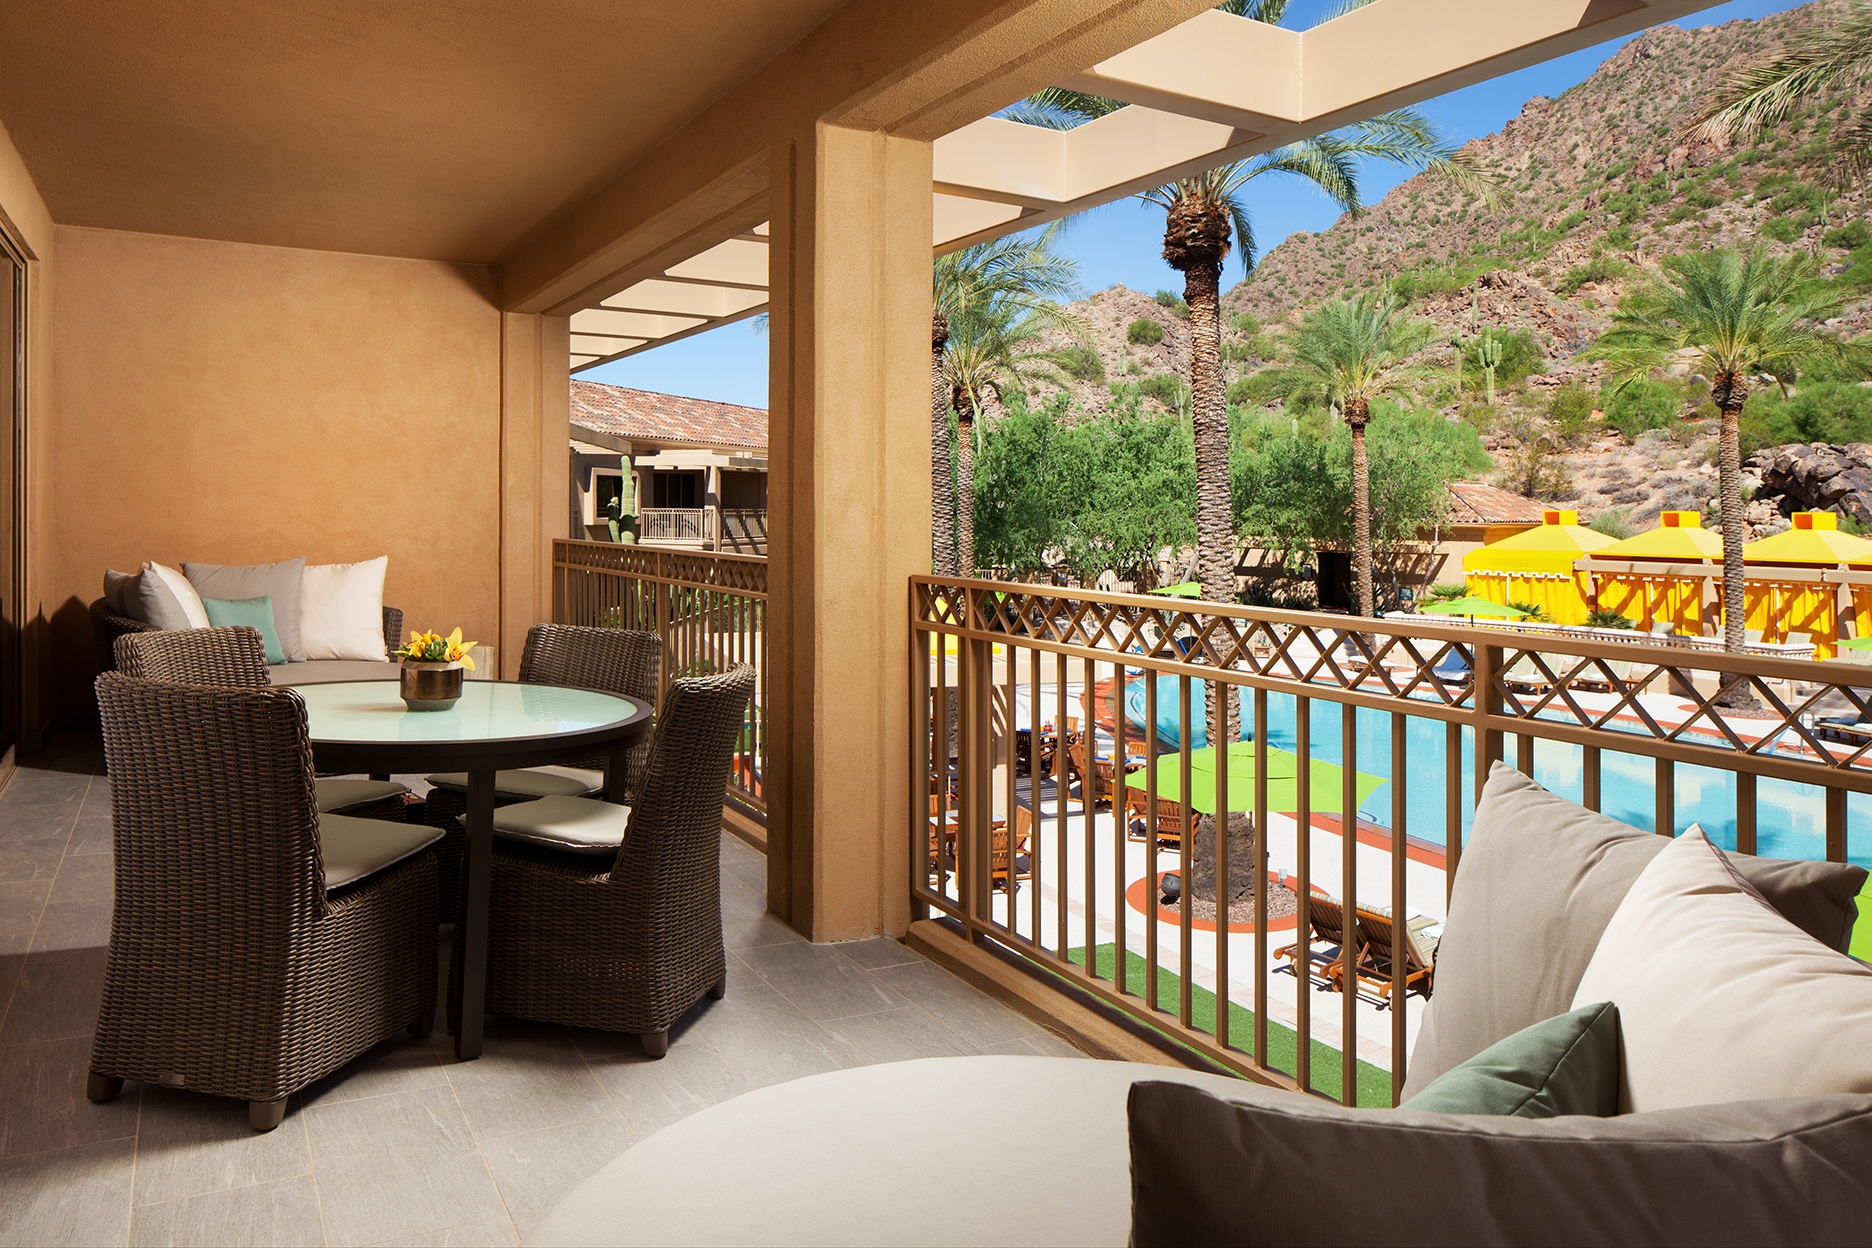 2 Bedroom Suites In Phoenix Az piazzesius